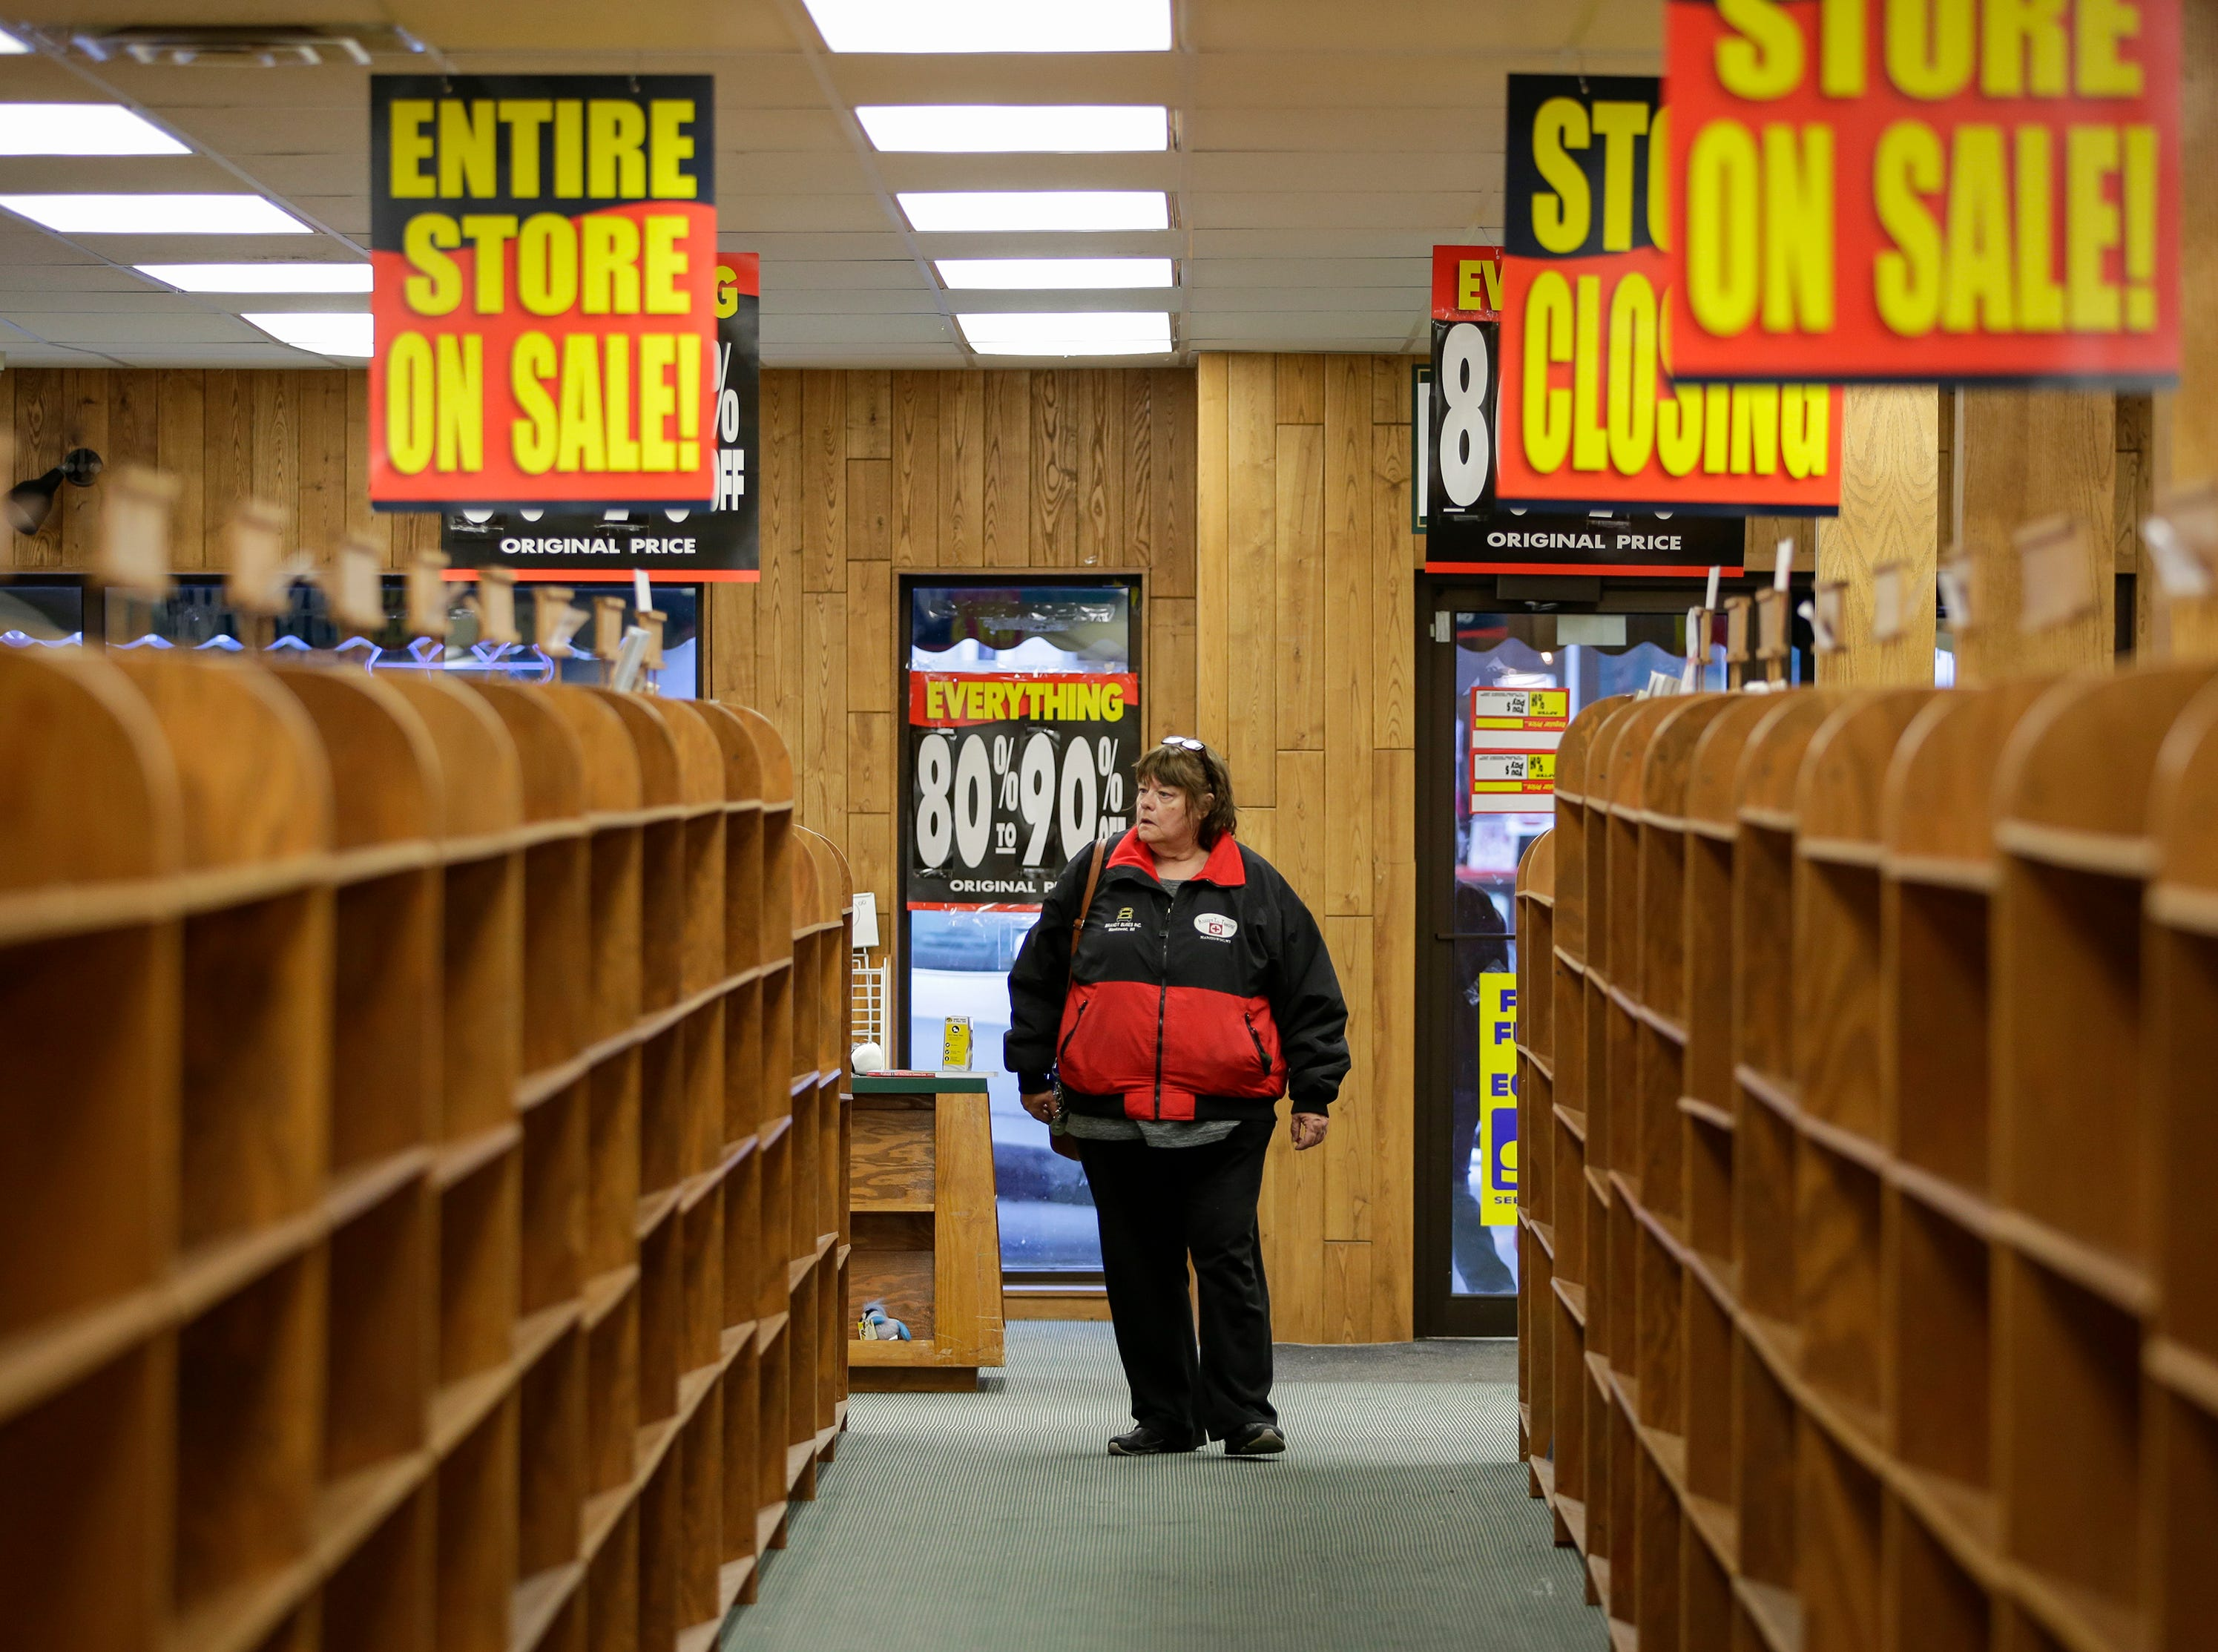 Lori Maltby walks through empty book shelves at Book World before it closes for good Thursday, Jan. 18, 2018, in Manitowoc, Wis. The downtown bookstore closed Saturday, Jan. 20th, 2018, after the company announced it would be closing all its 45 stores including 20 in Wisconsin. Josh Clark/USA TODAY NETWORK-Wisconsin